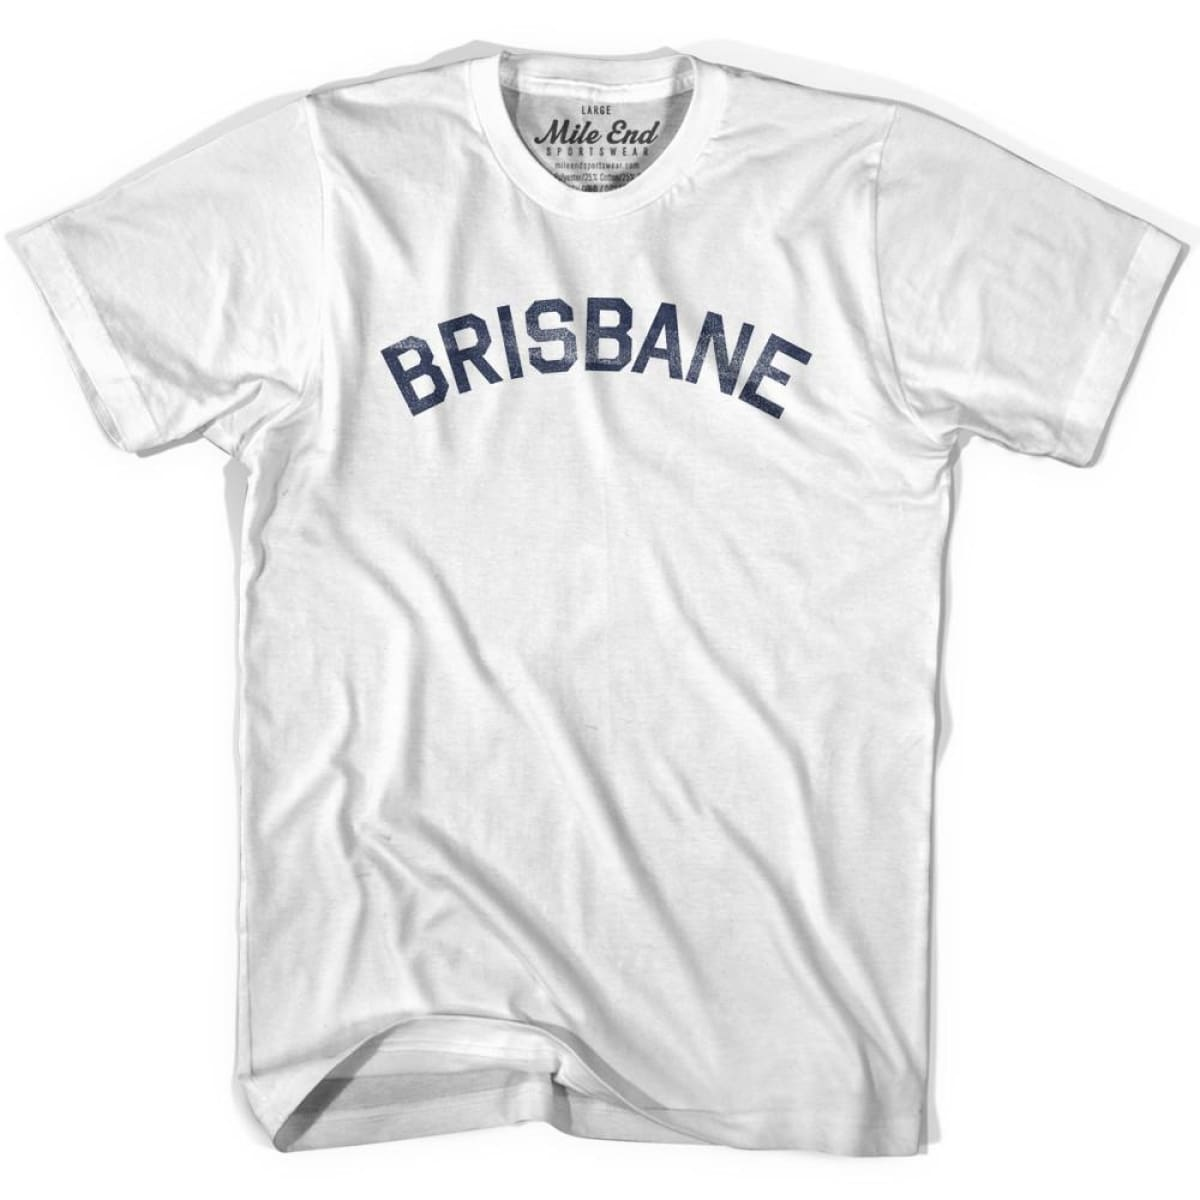 Brisbane City Vintage T-shirt - White / Youth X-Small - Mile End City